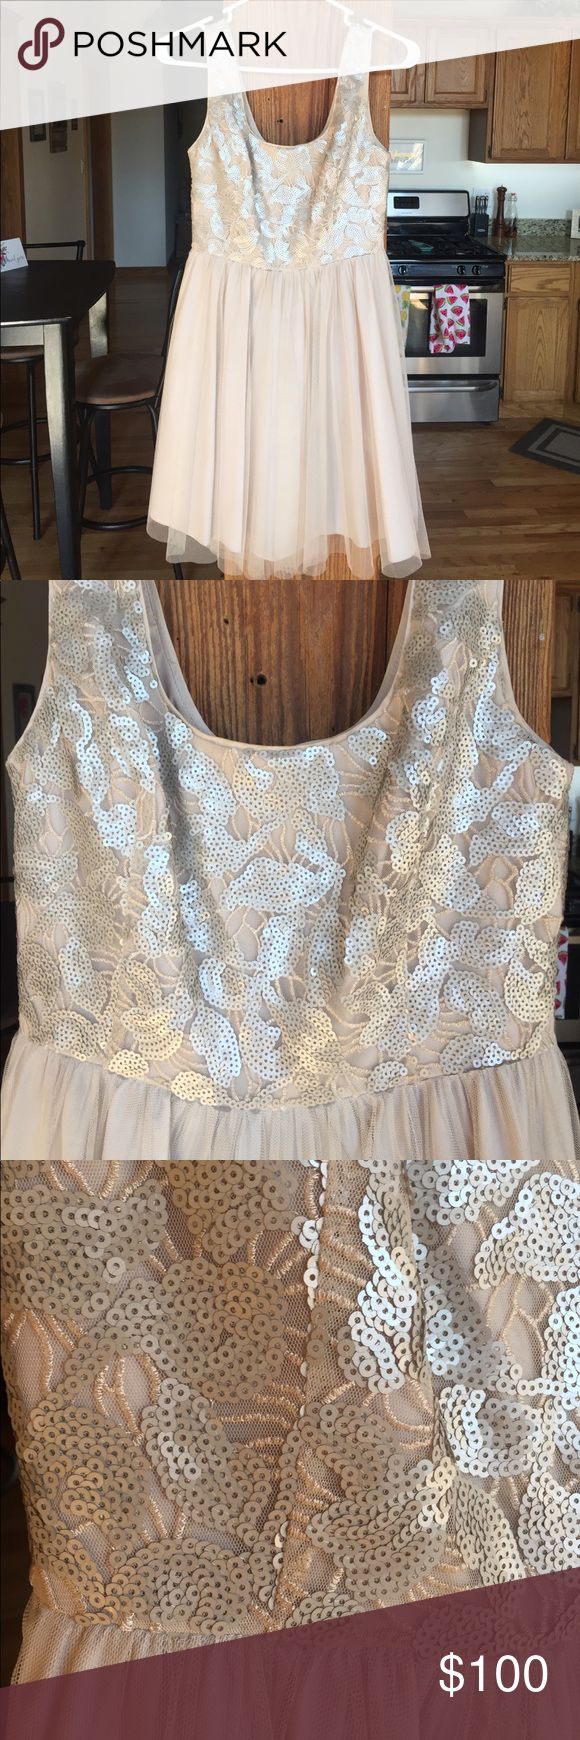 Beige party dress Beautiful beige party dress with sequin top detail and tulle bottom. Only worn once as a bridesmaid dress Aidan Mattox Dresses Asymmetrical